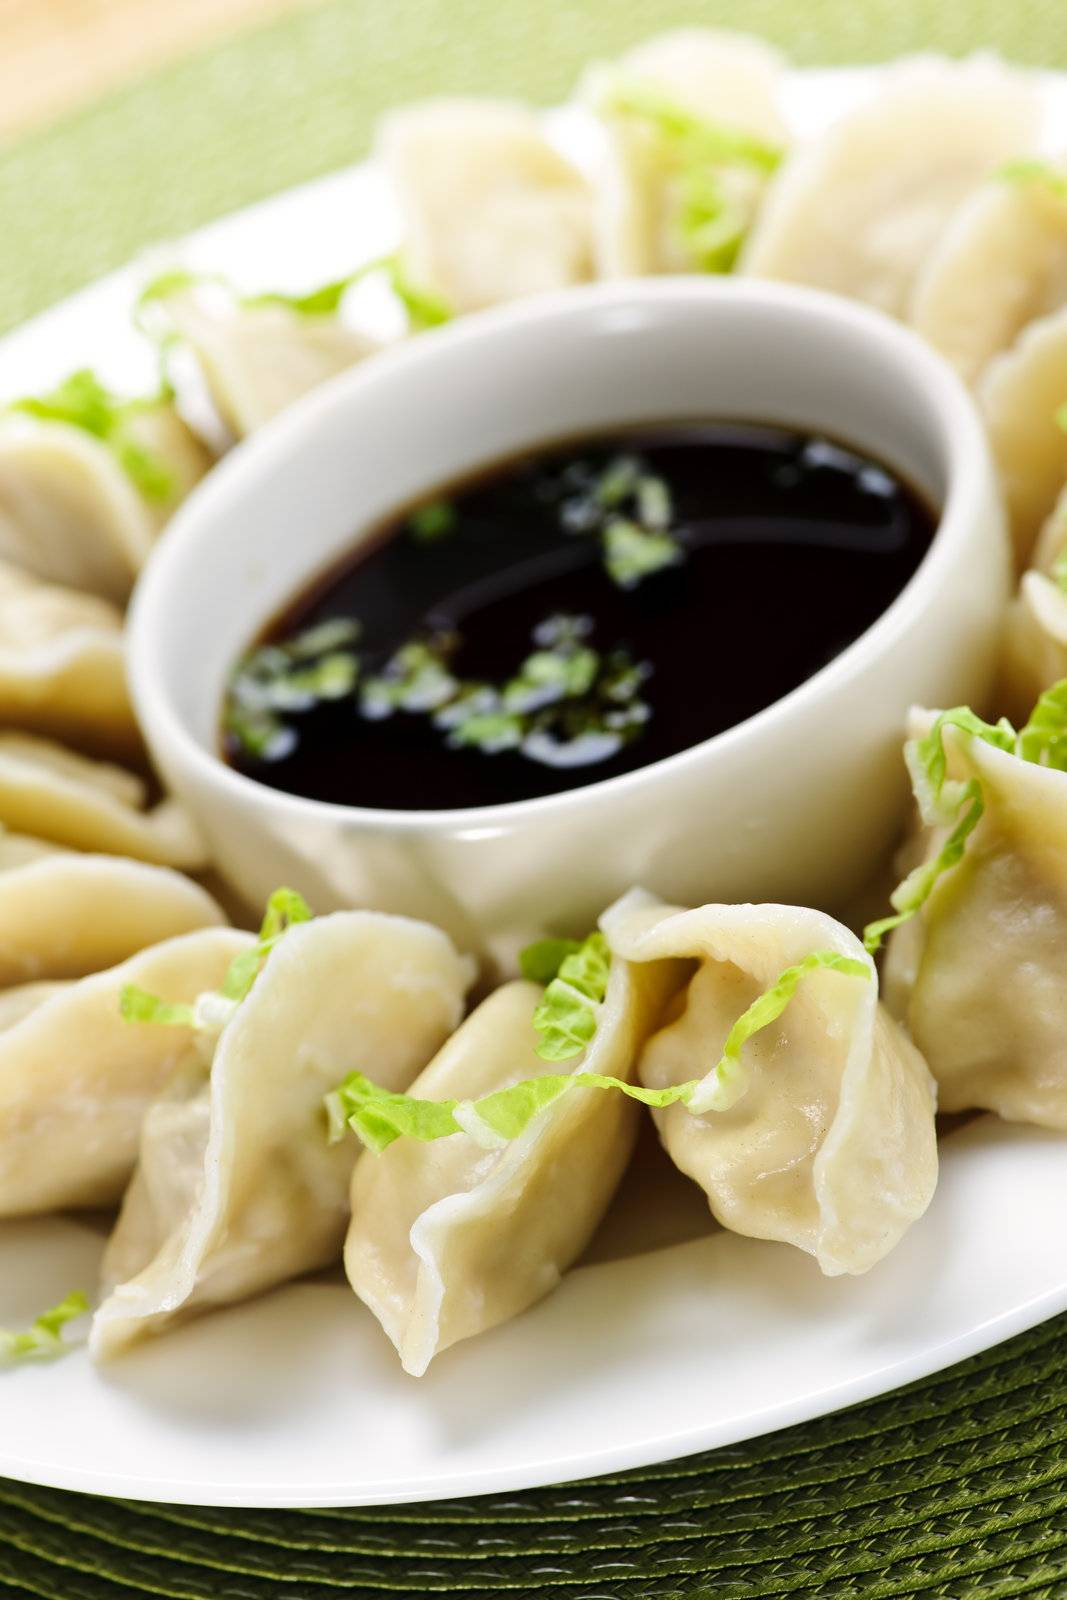 dumplings, traditional, ethnic, steamed, soy, sauce - D5980100